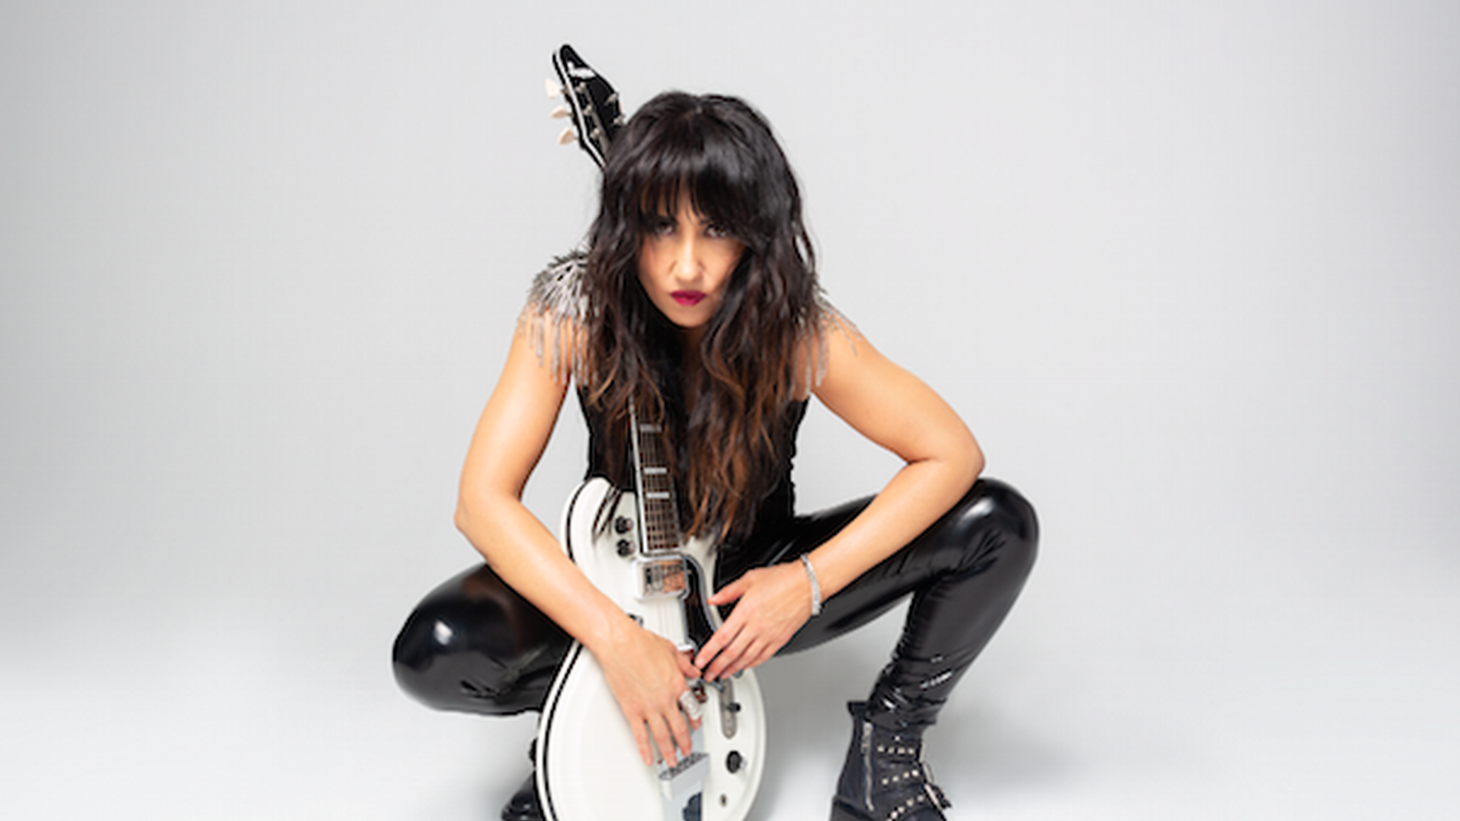 The latest album from Scottish singer-songwriter KT Tunstall, Wax, was produced by Franz Ferdinand's Nick McCarthy and is the second in a trilogy of records exploring themes of spirit, body and mind.